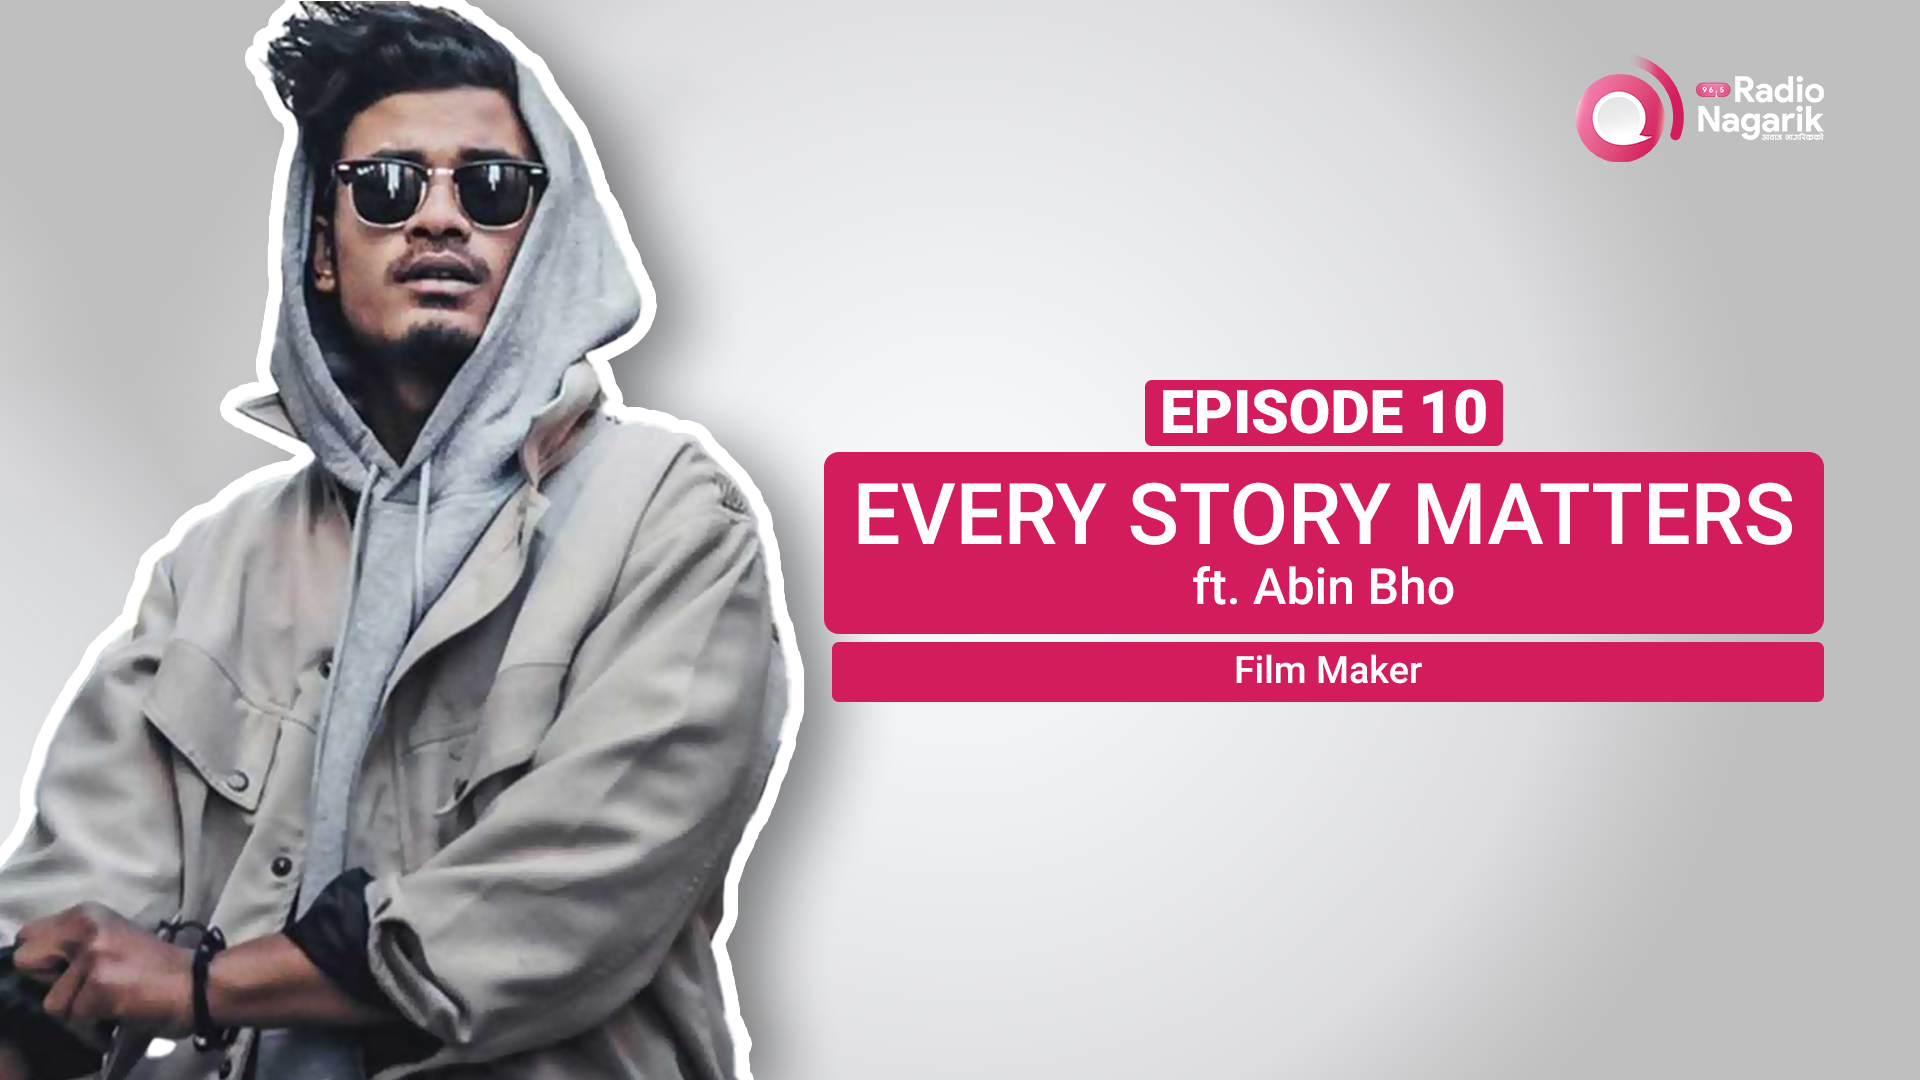 A Harvard Rejected student But a Successful Filmmaker | Nepali Podcast with Abin Bho